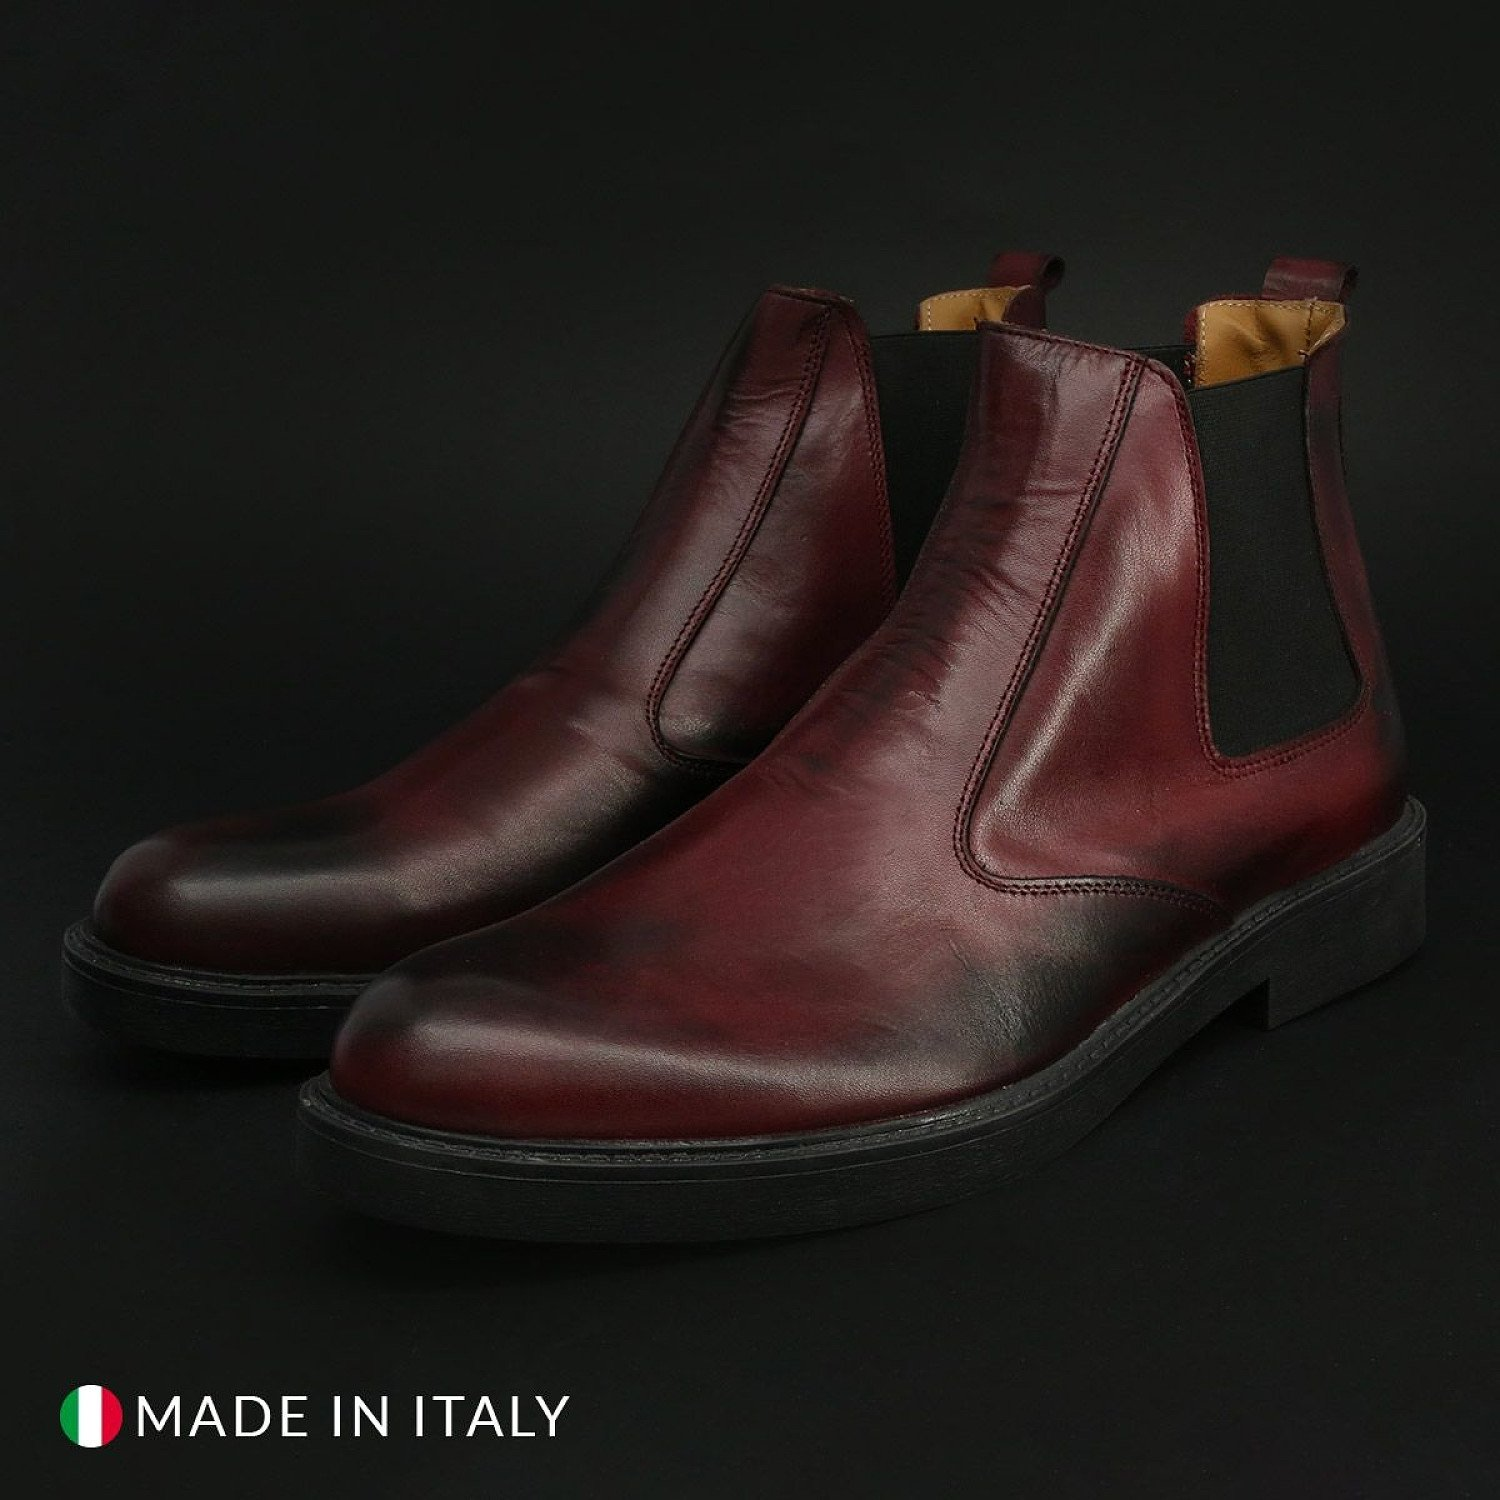 Save 50% On This Men's Duca di Morrone – 100_COSOVARO – Red Shoe at Special Offer With Free Delivery